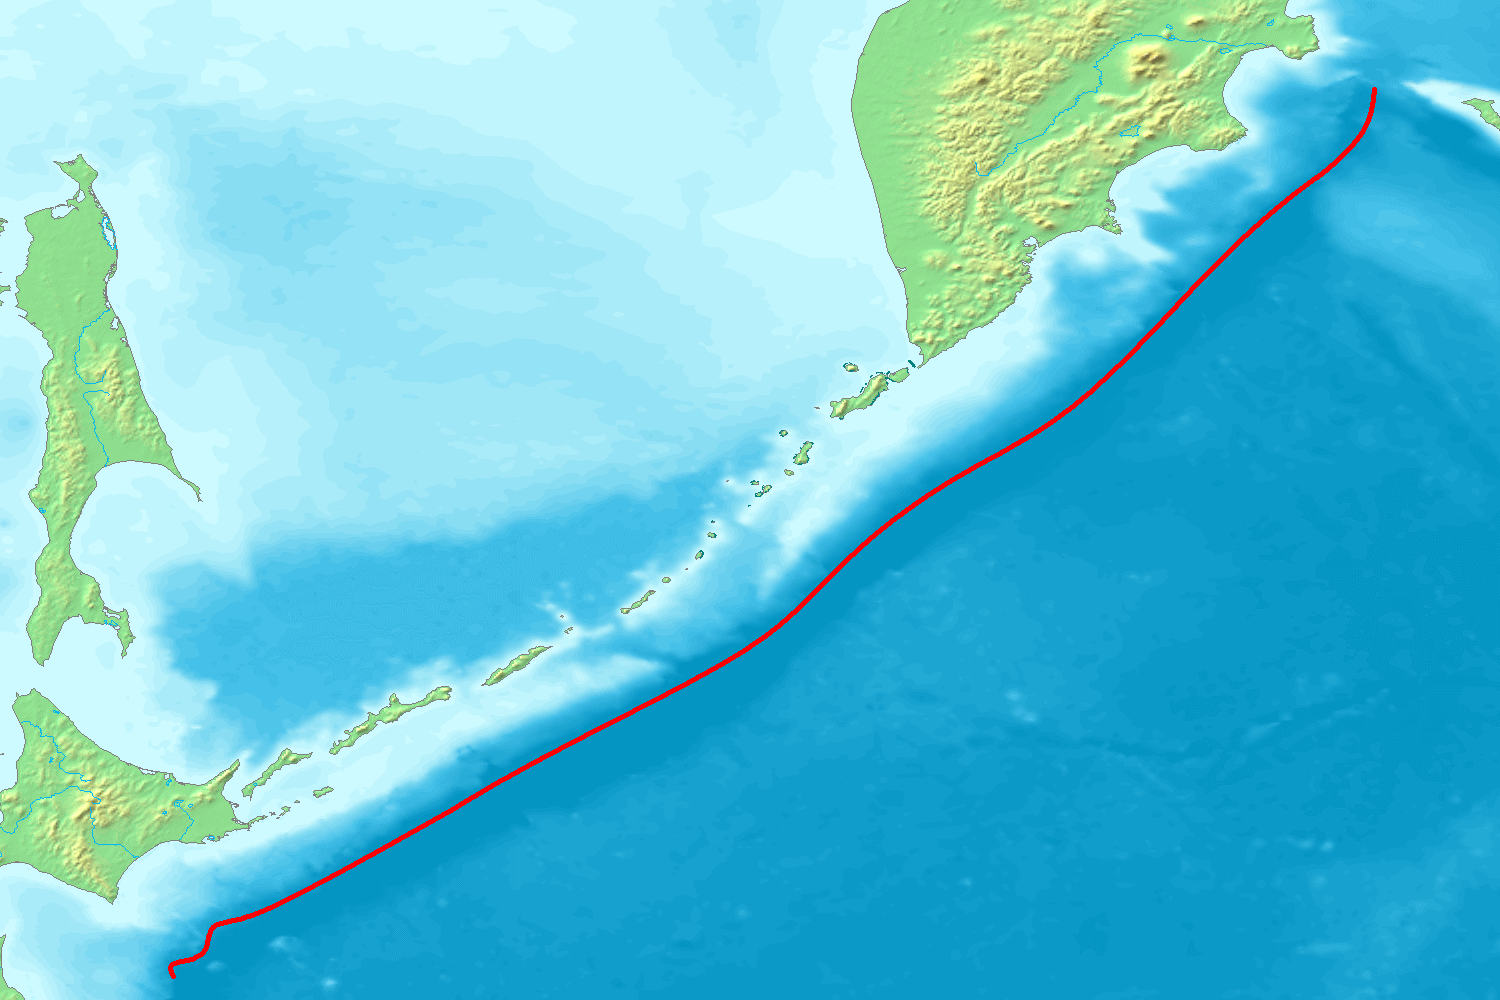 http://upload.wikimedia.org/wikipedia/commons/3/38/Kuril-Kamchatka_trench_topographic.png